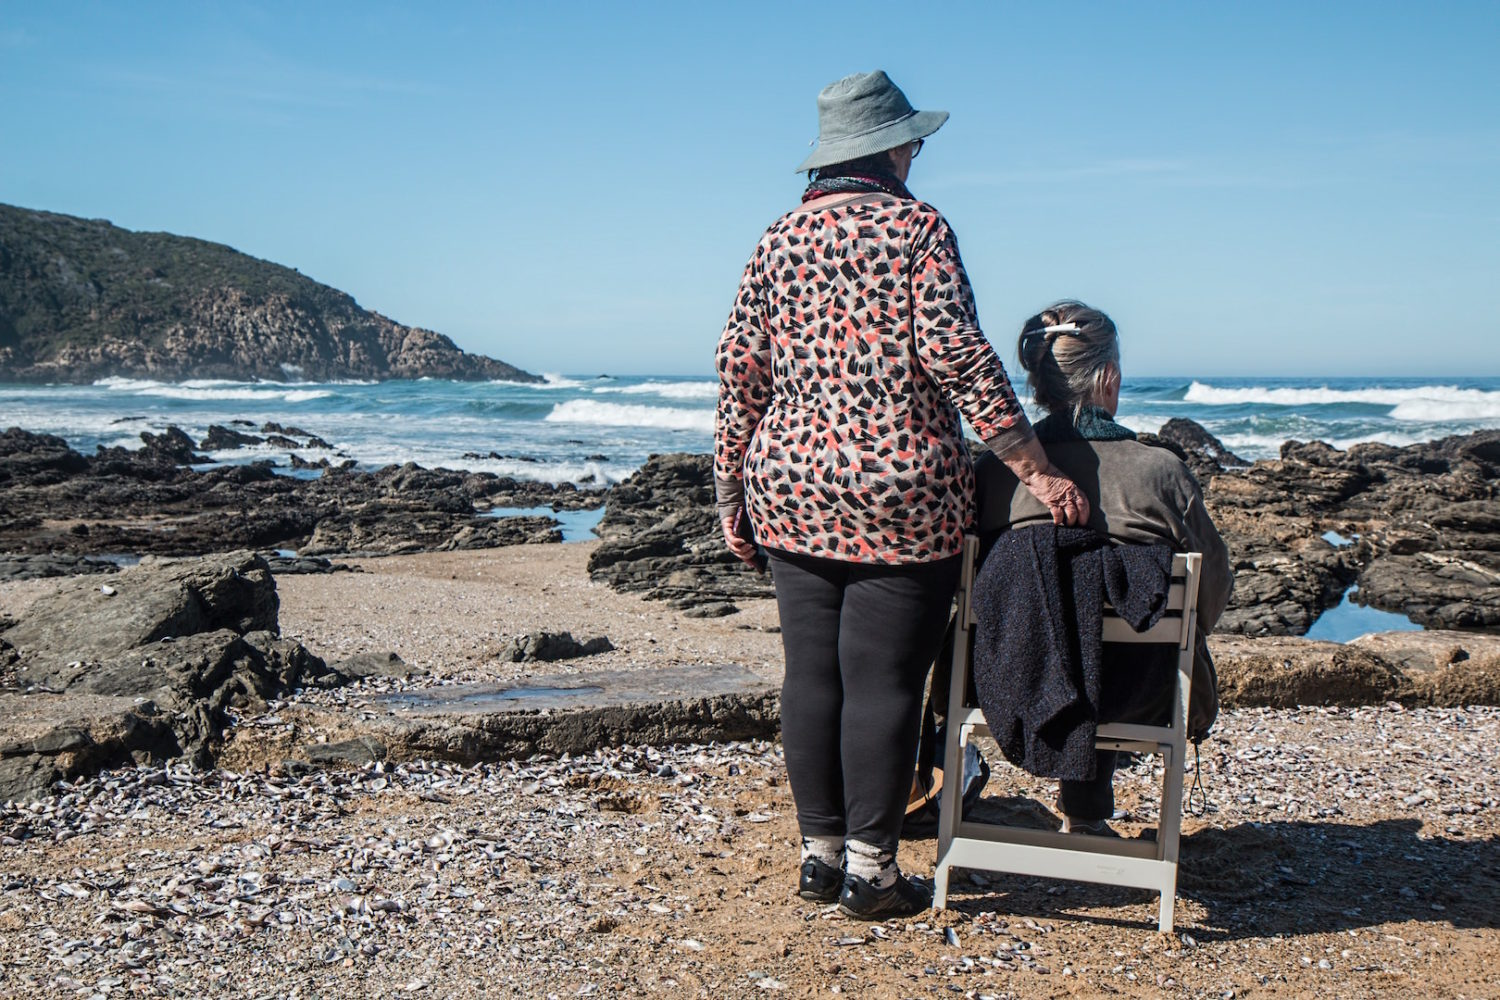 Two elderly people on the beach looking out towards the water; one is standing and one is seated